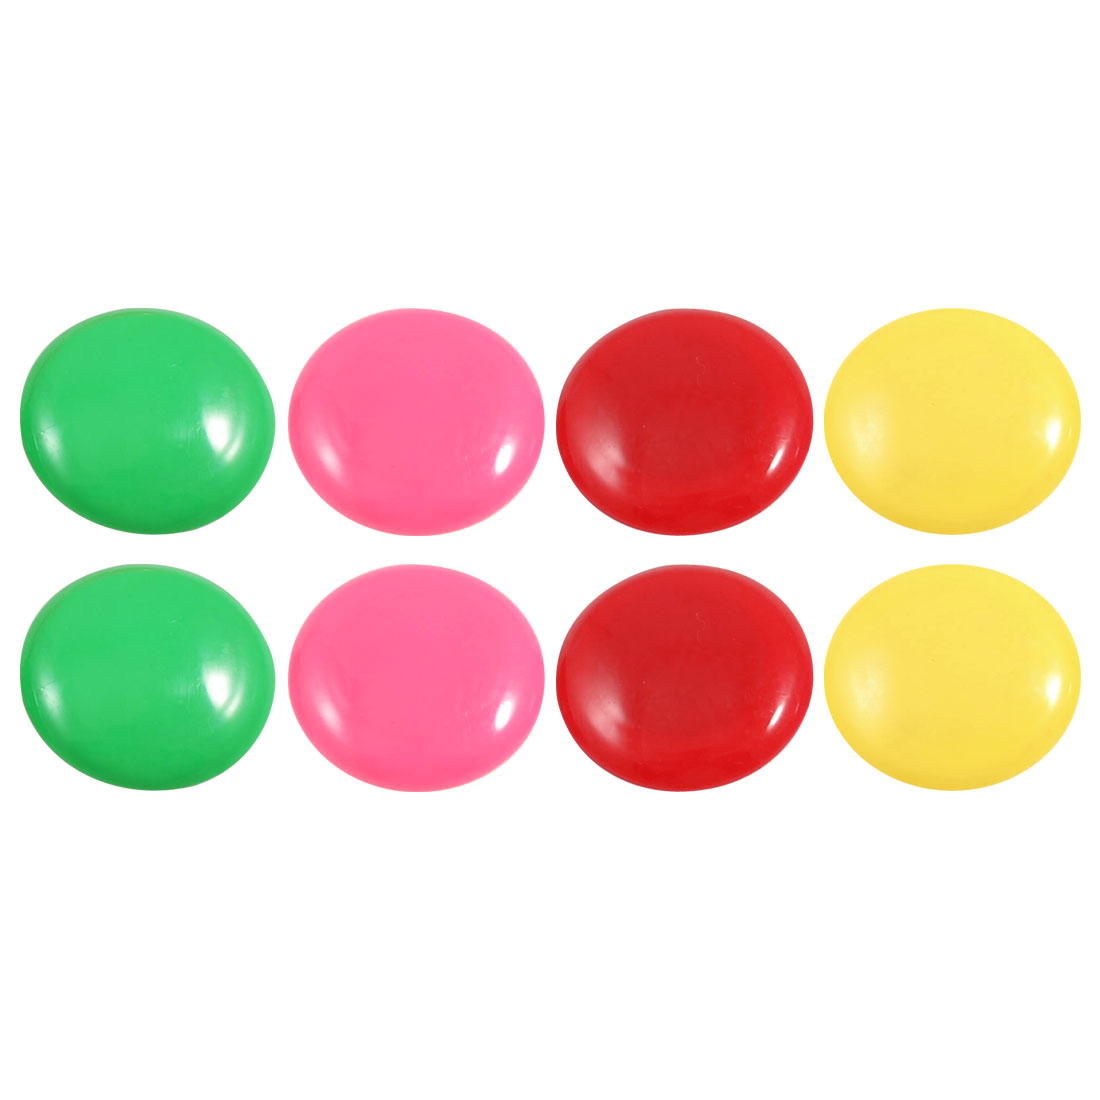 8 Pcs Colored Round Casing 40mm Dia Fridge Magnets Home Decoration